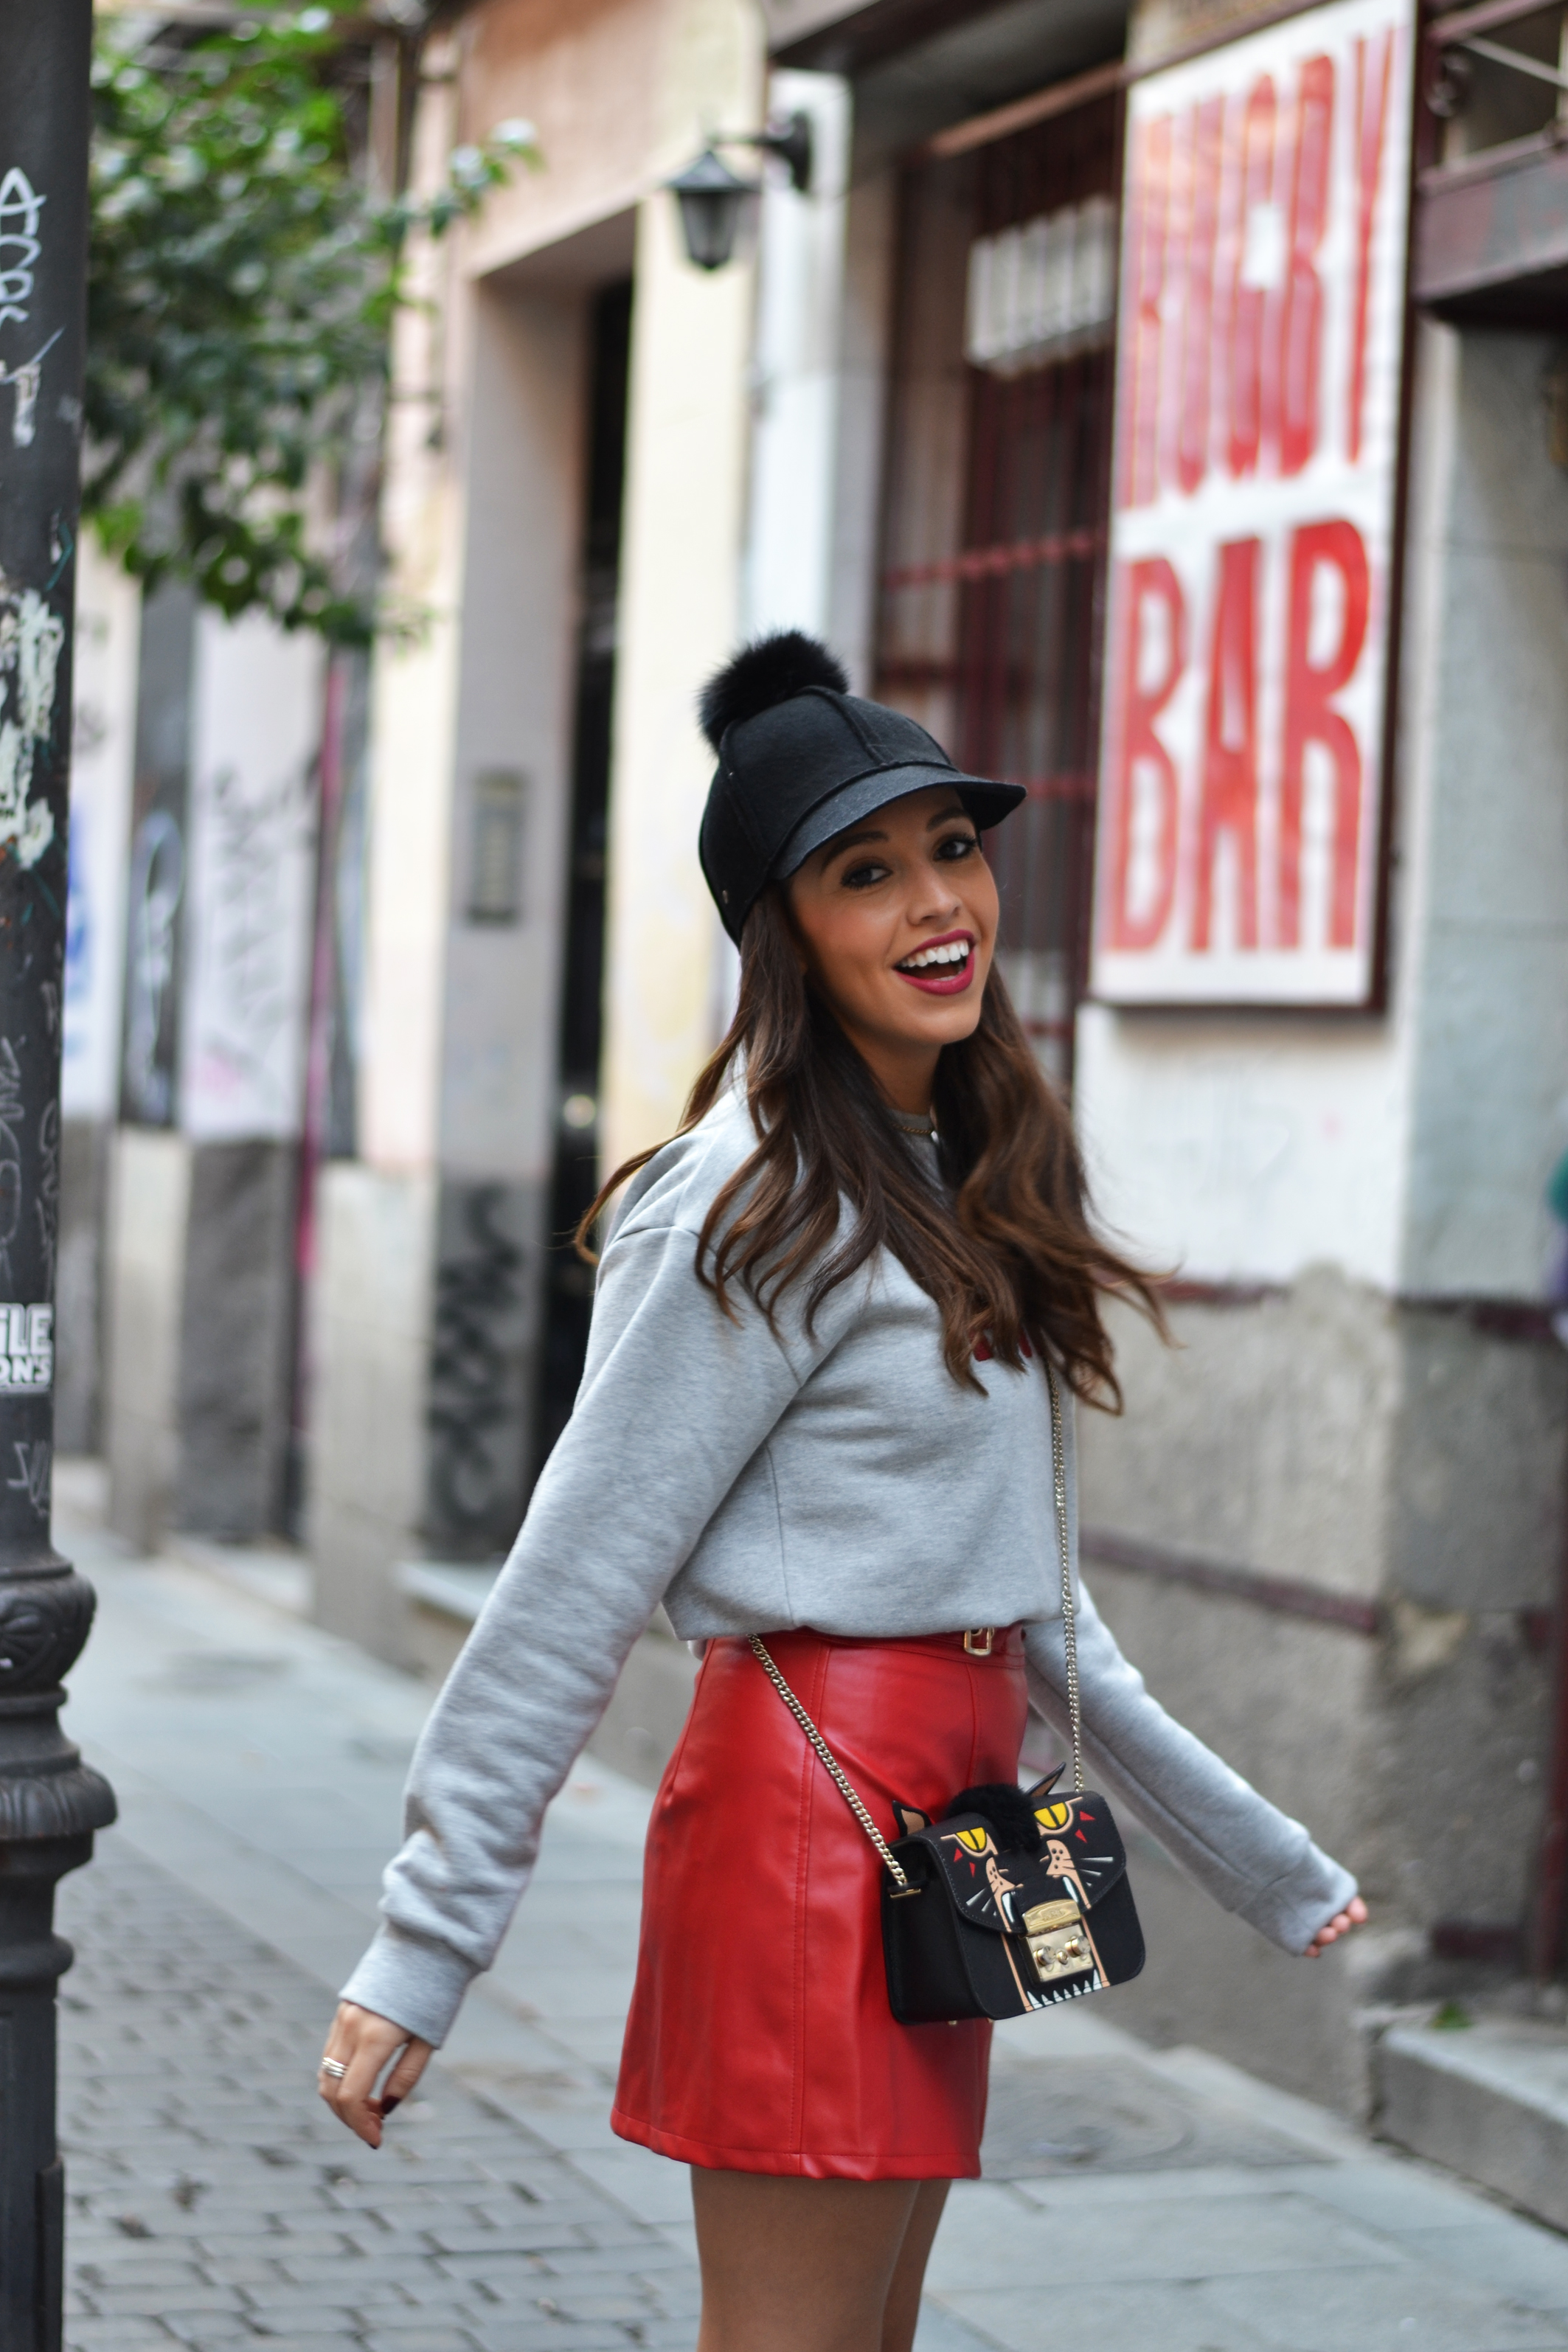 Leather red skirt, pearls boots, grey sweatshirt, pompom hat, autumn outfit